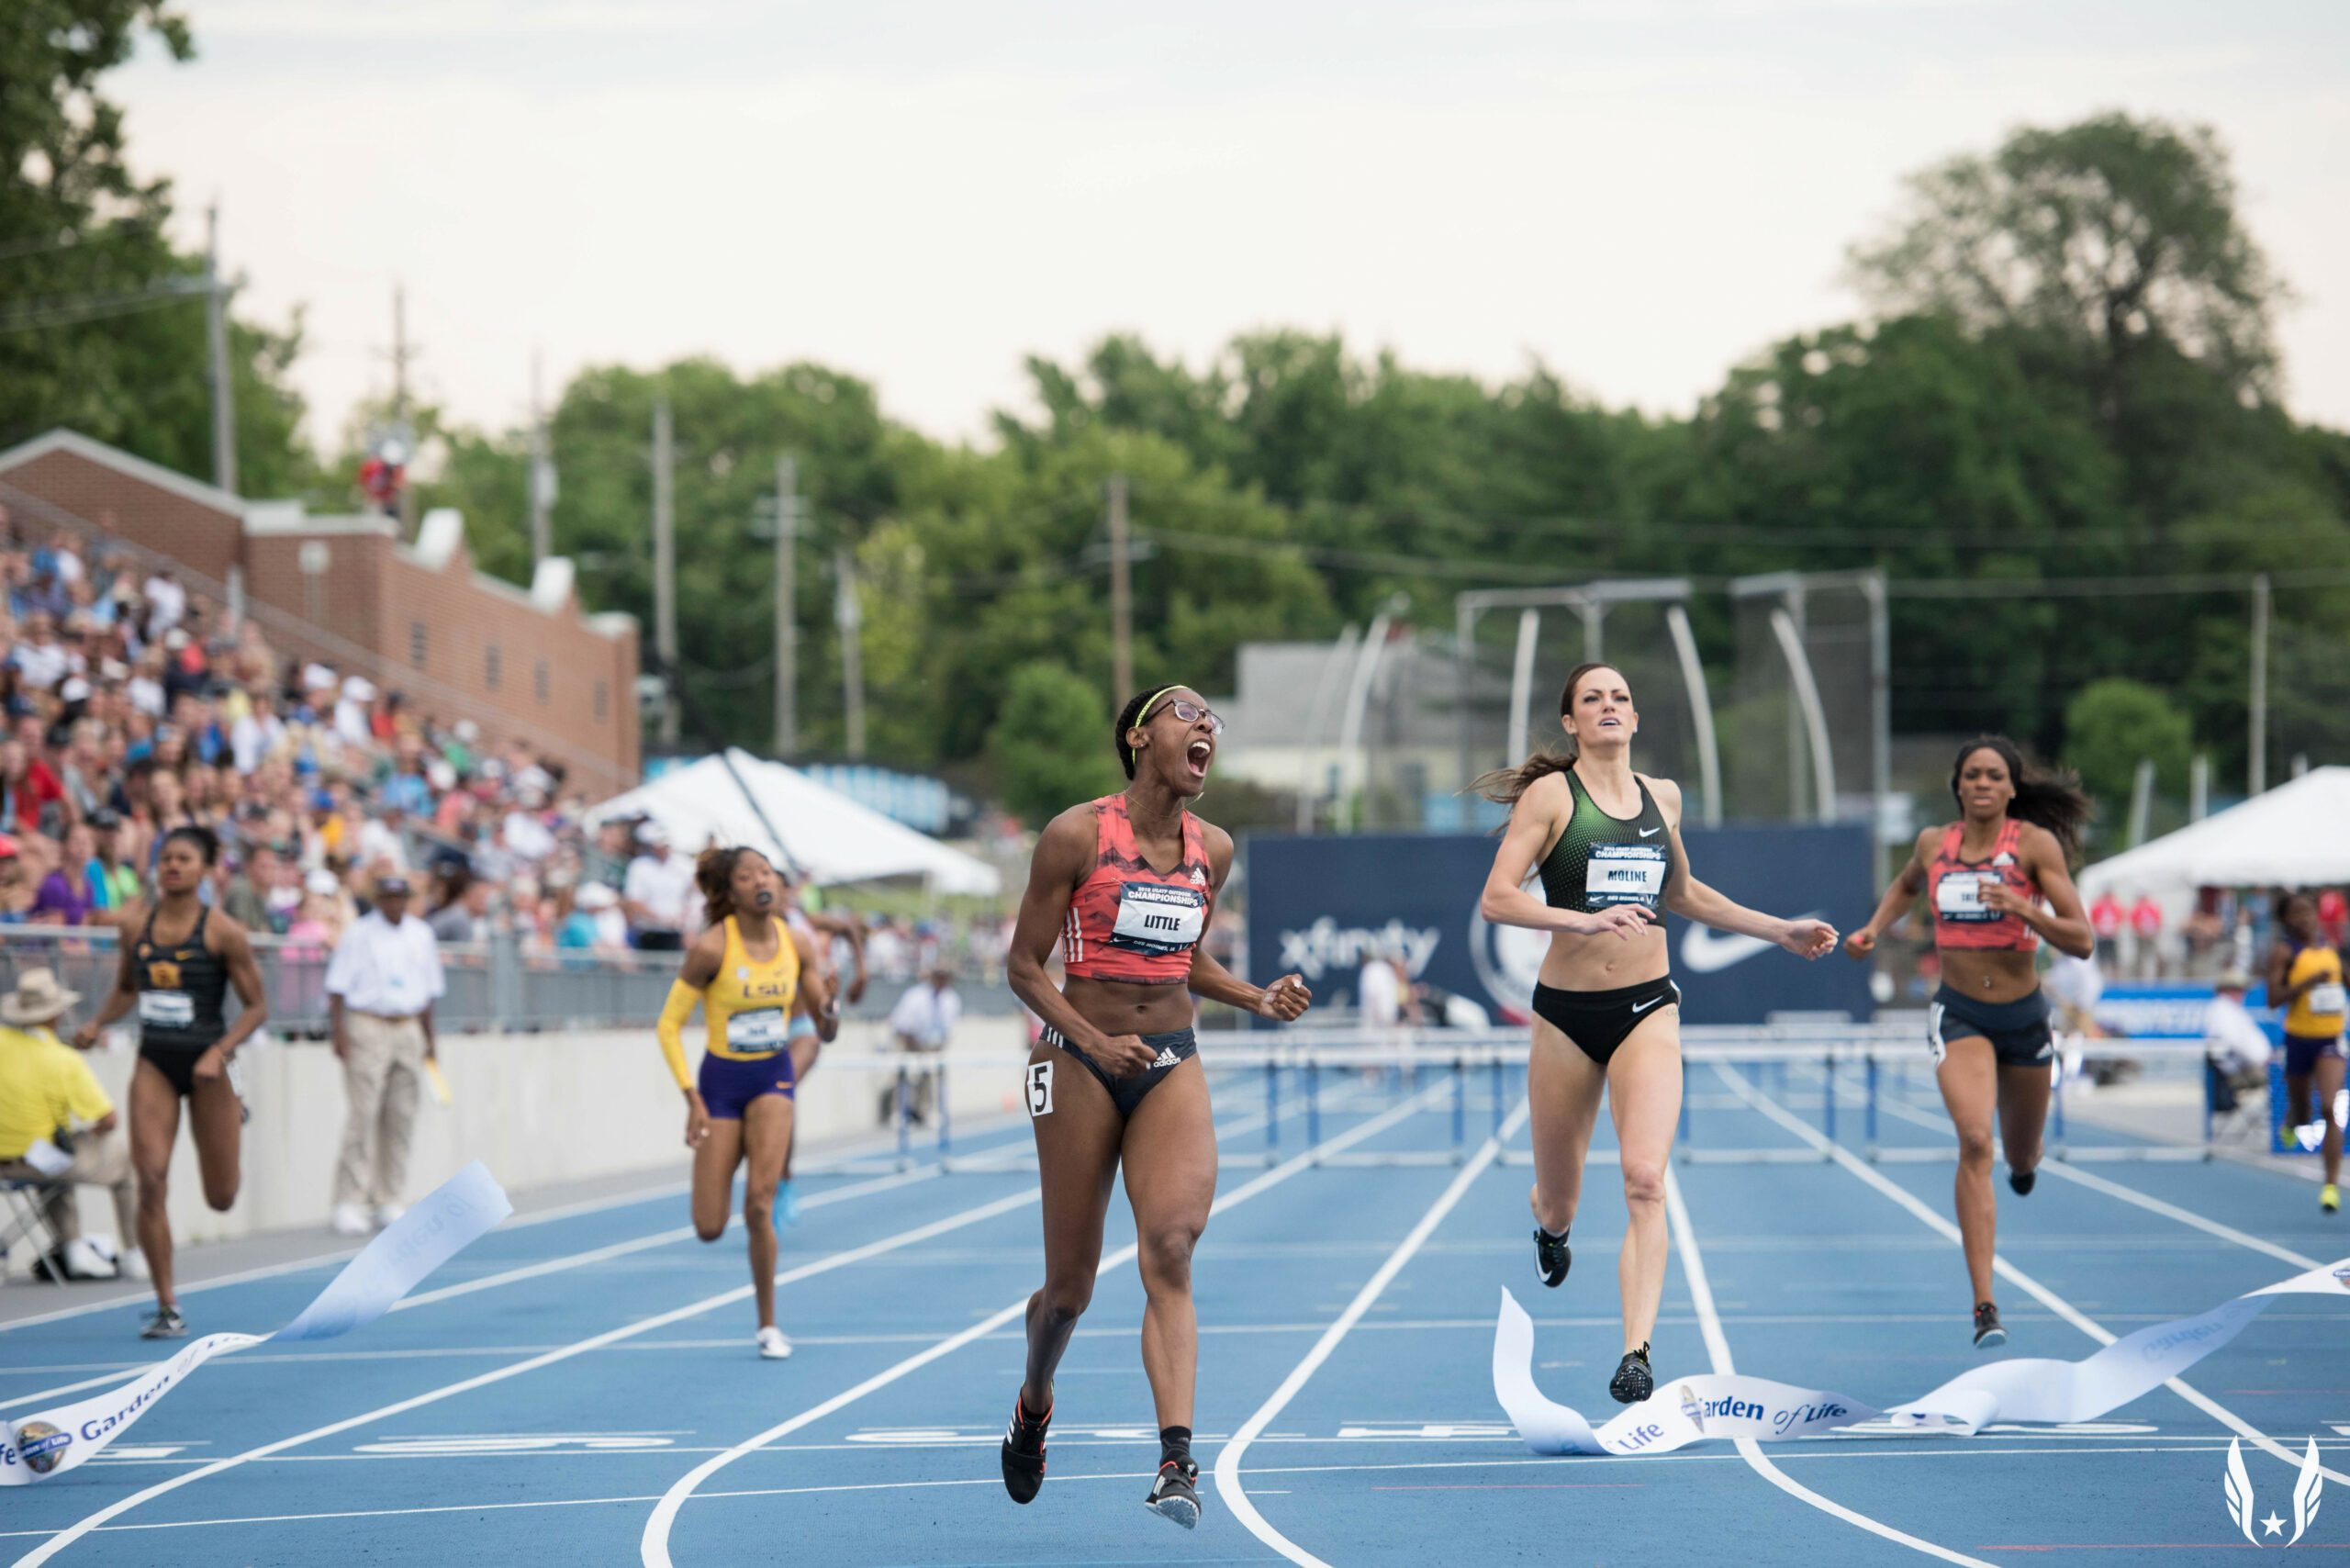 12 Toyota USATF Outdoor Championships | Des Moines, IA - 2020 toyota usatf outdoor championships